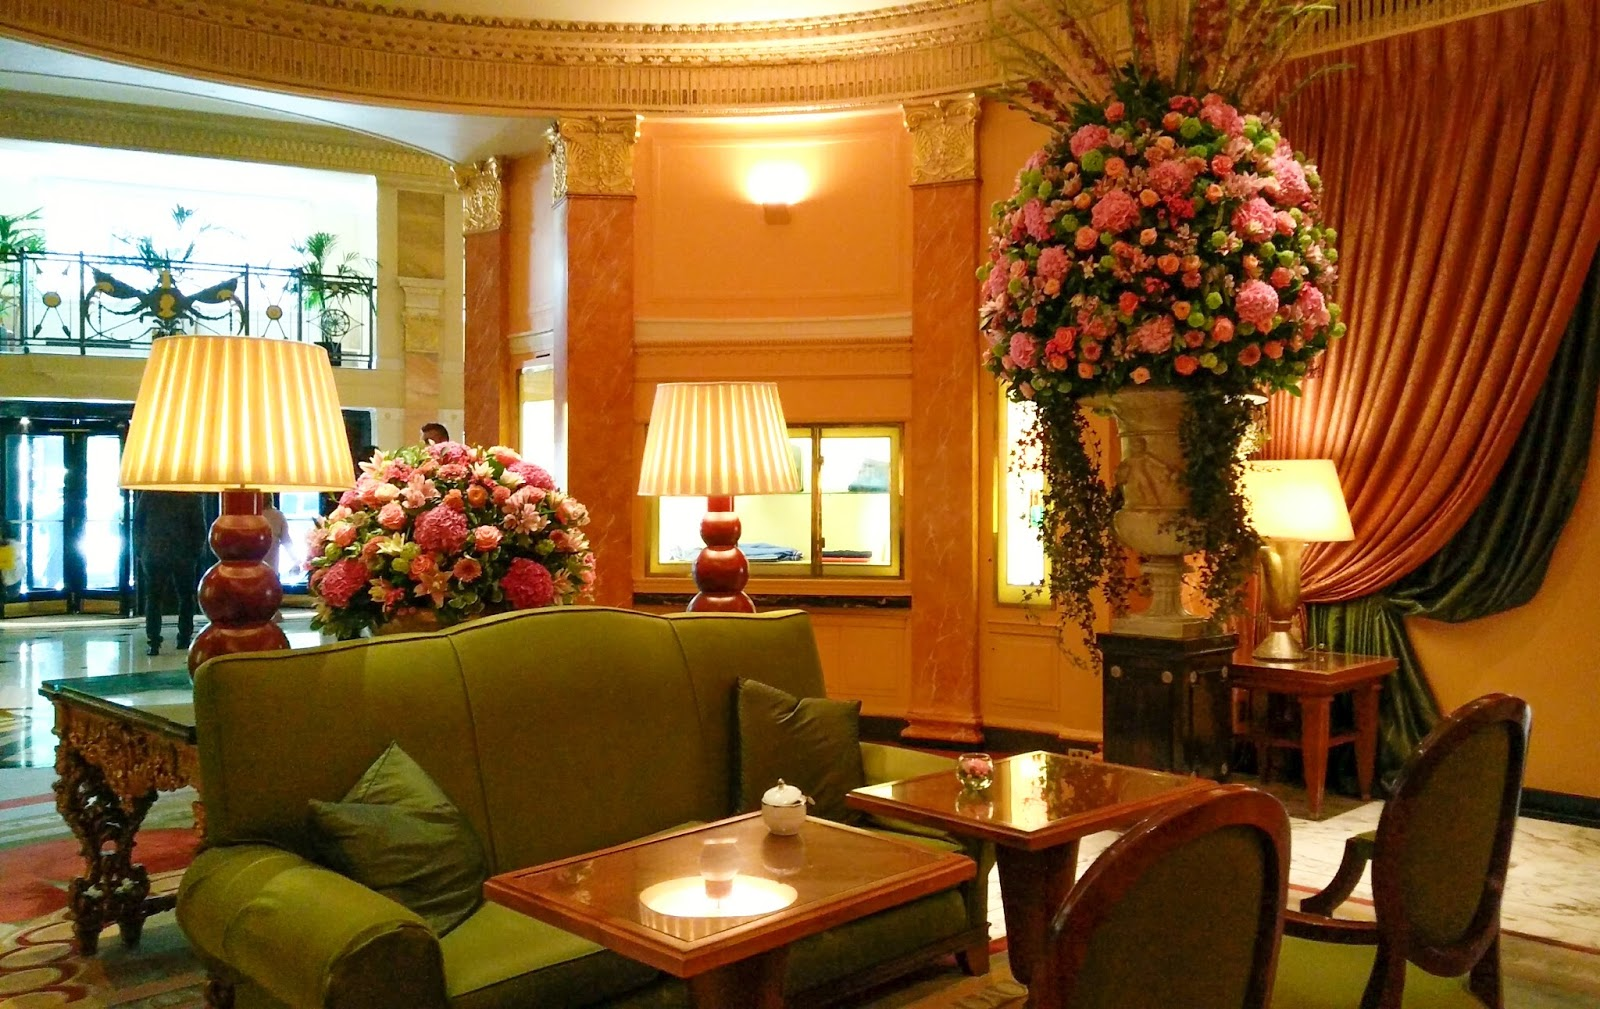 The Promenade at the Dorchester